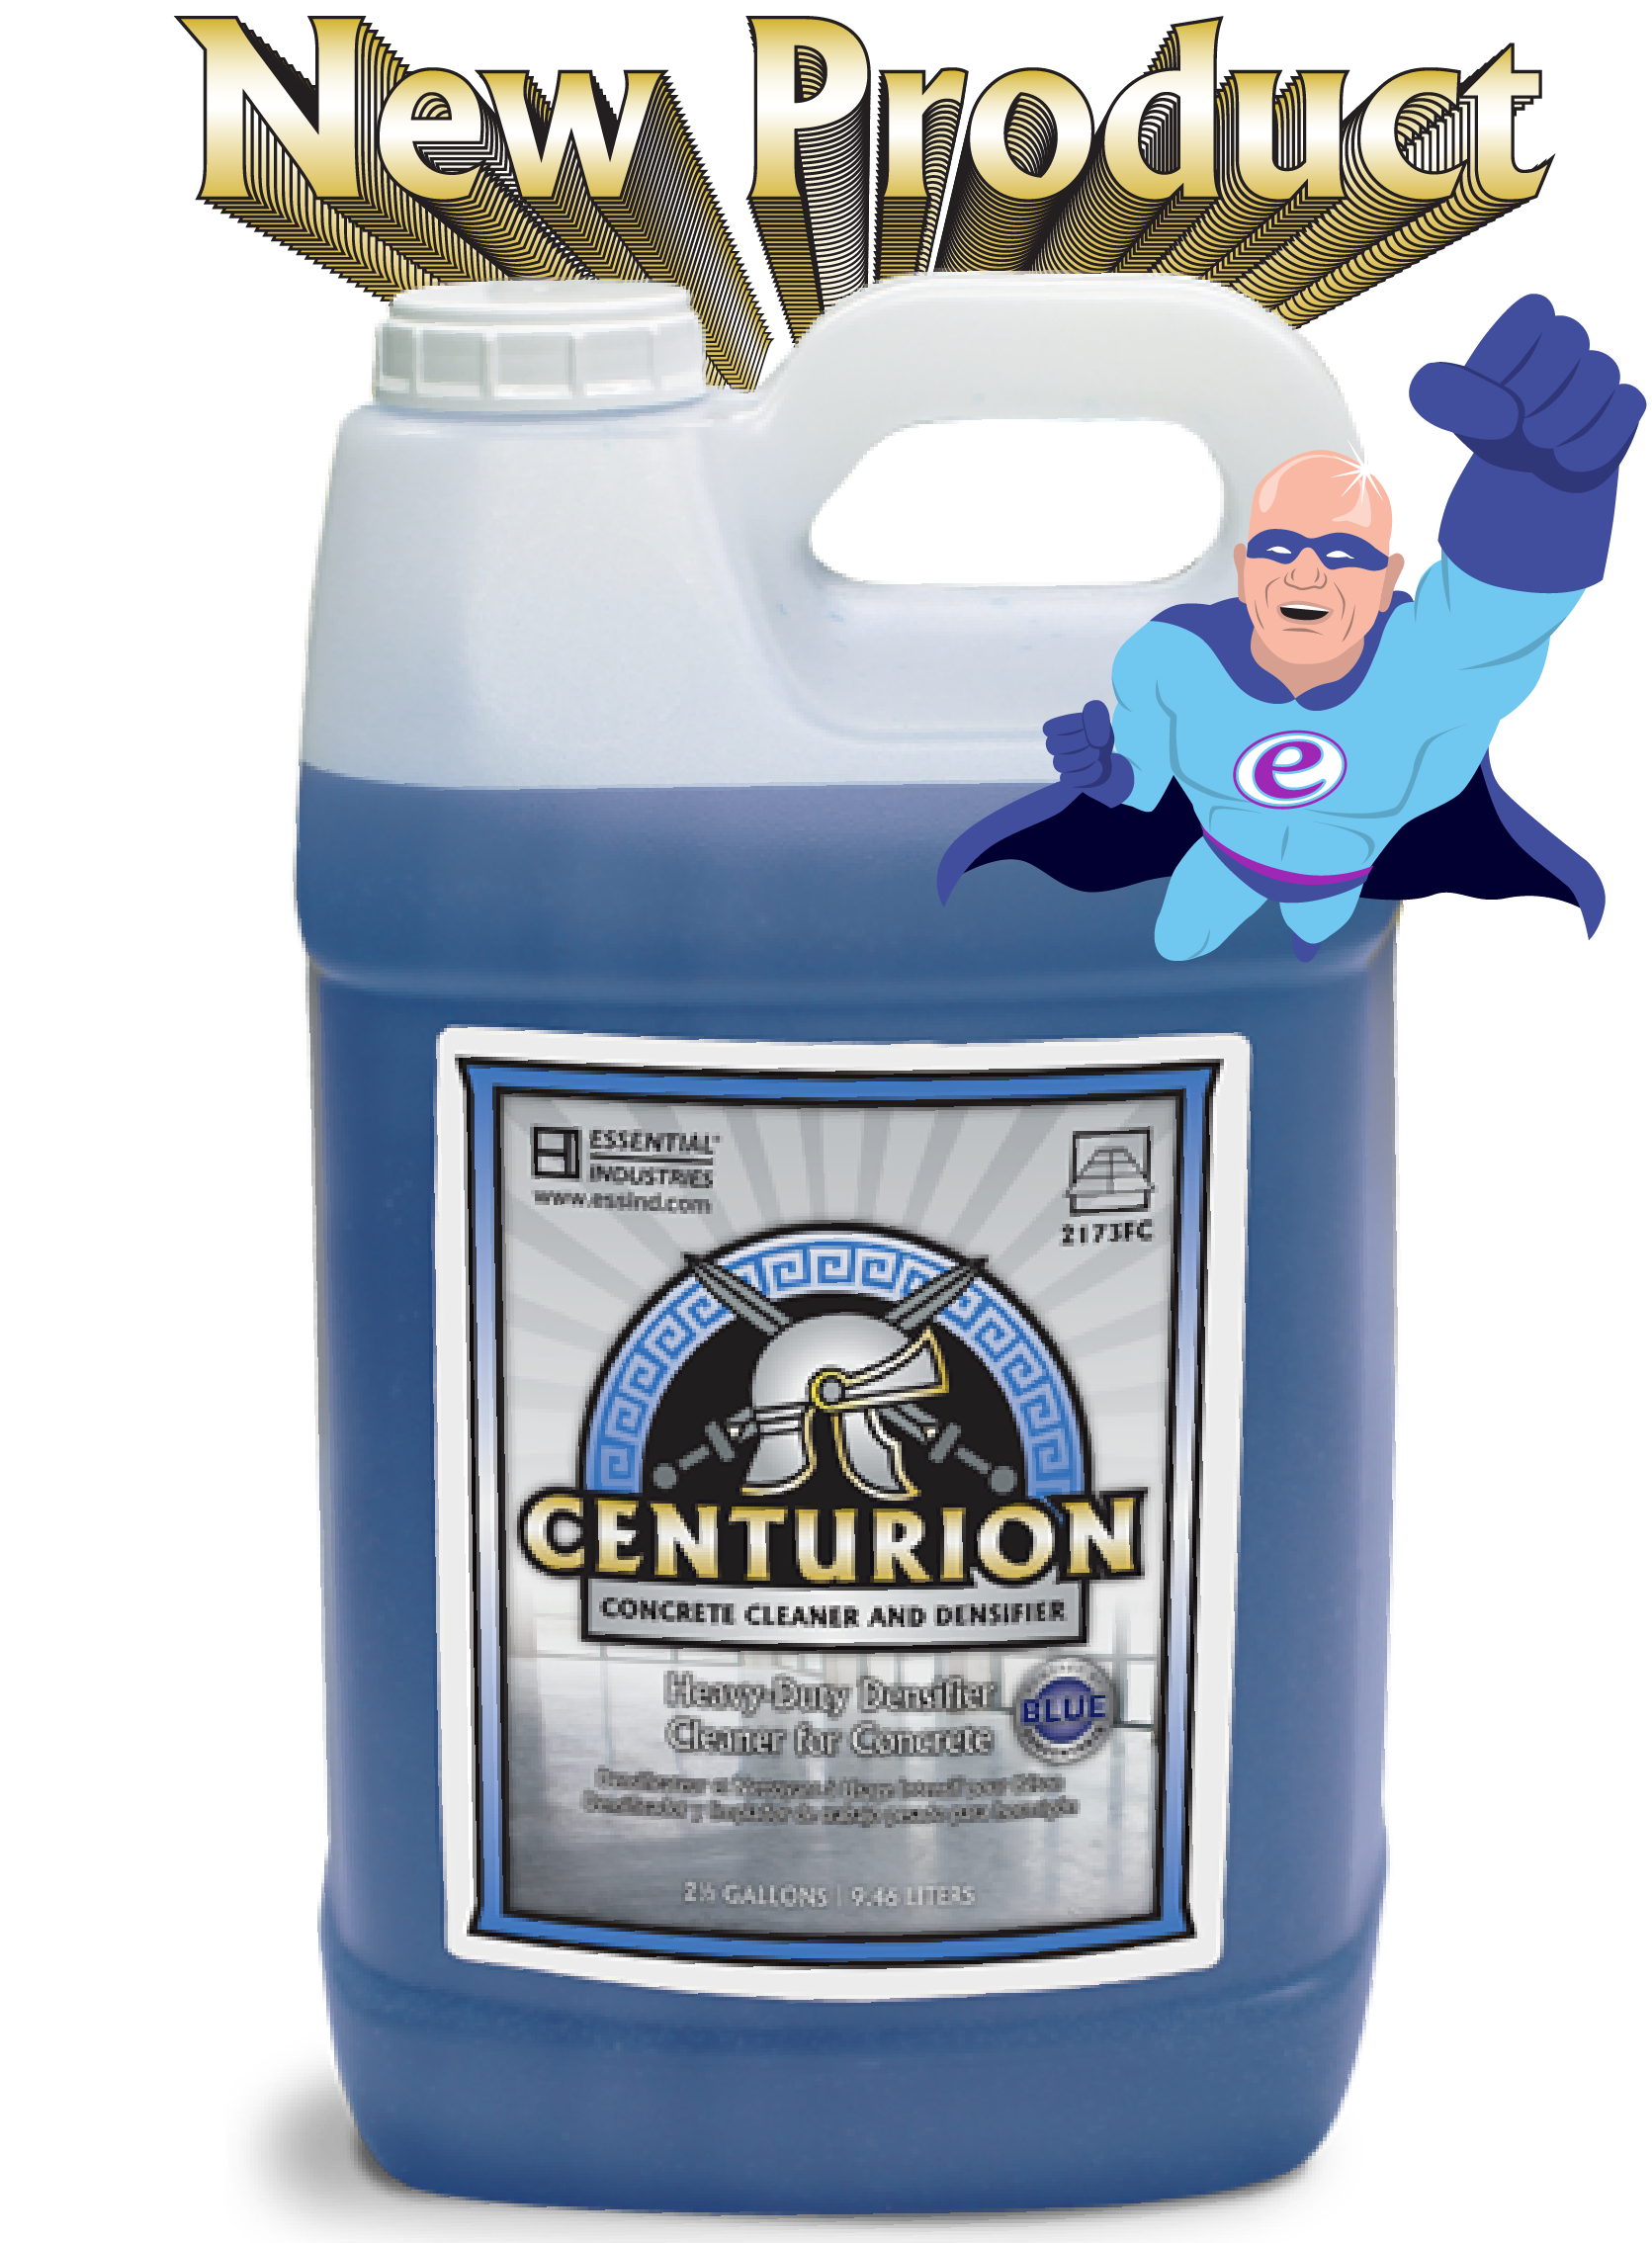 New Product Centurion Concrete Cleaner and Densifier